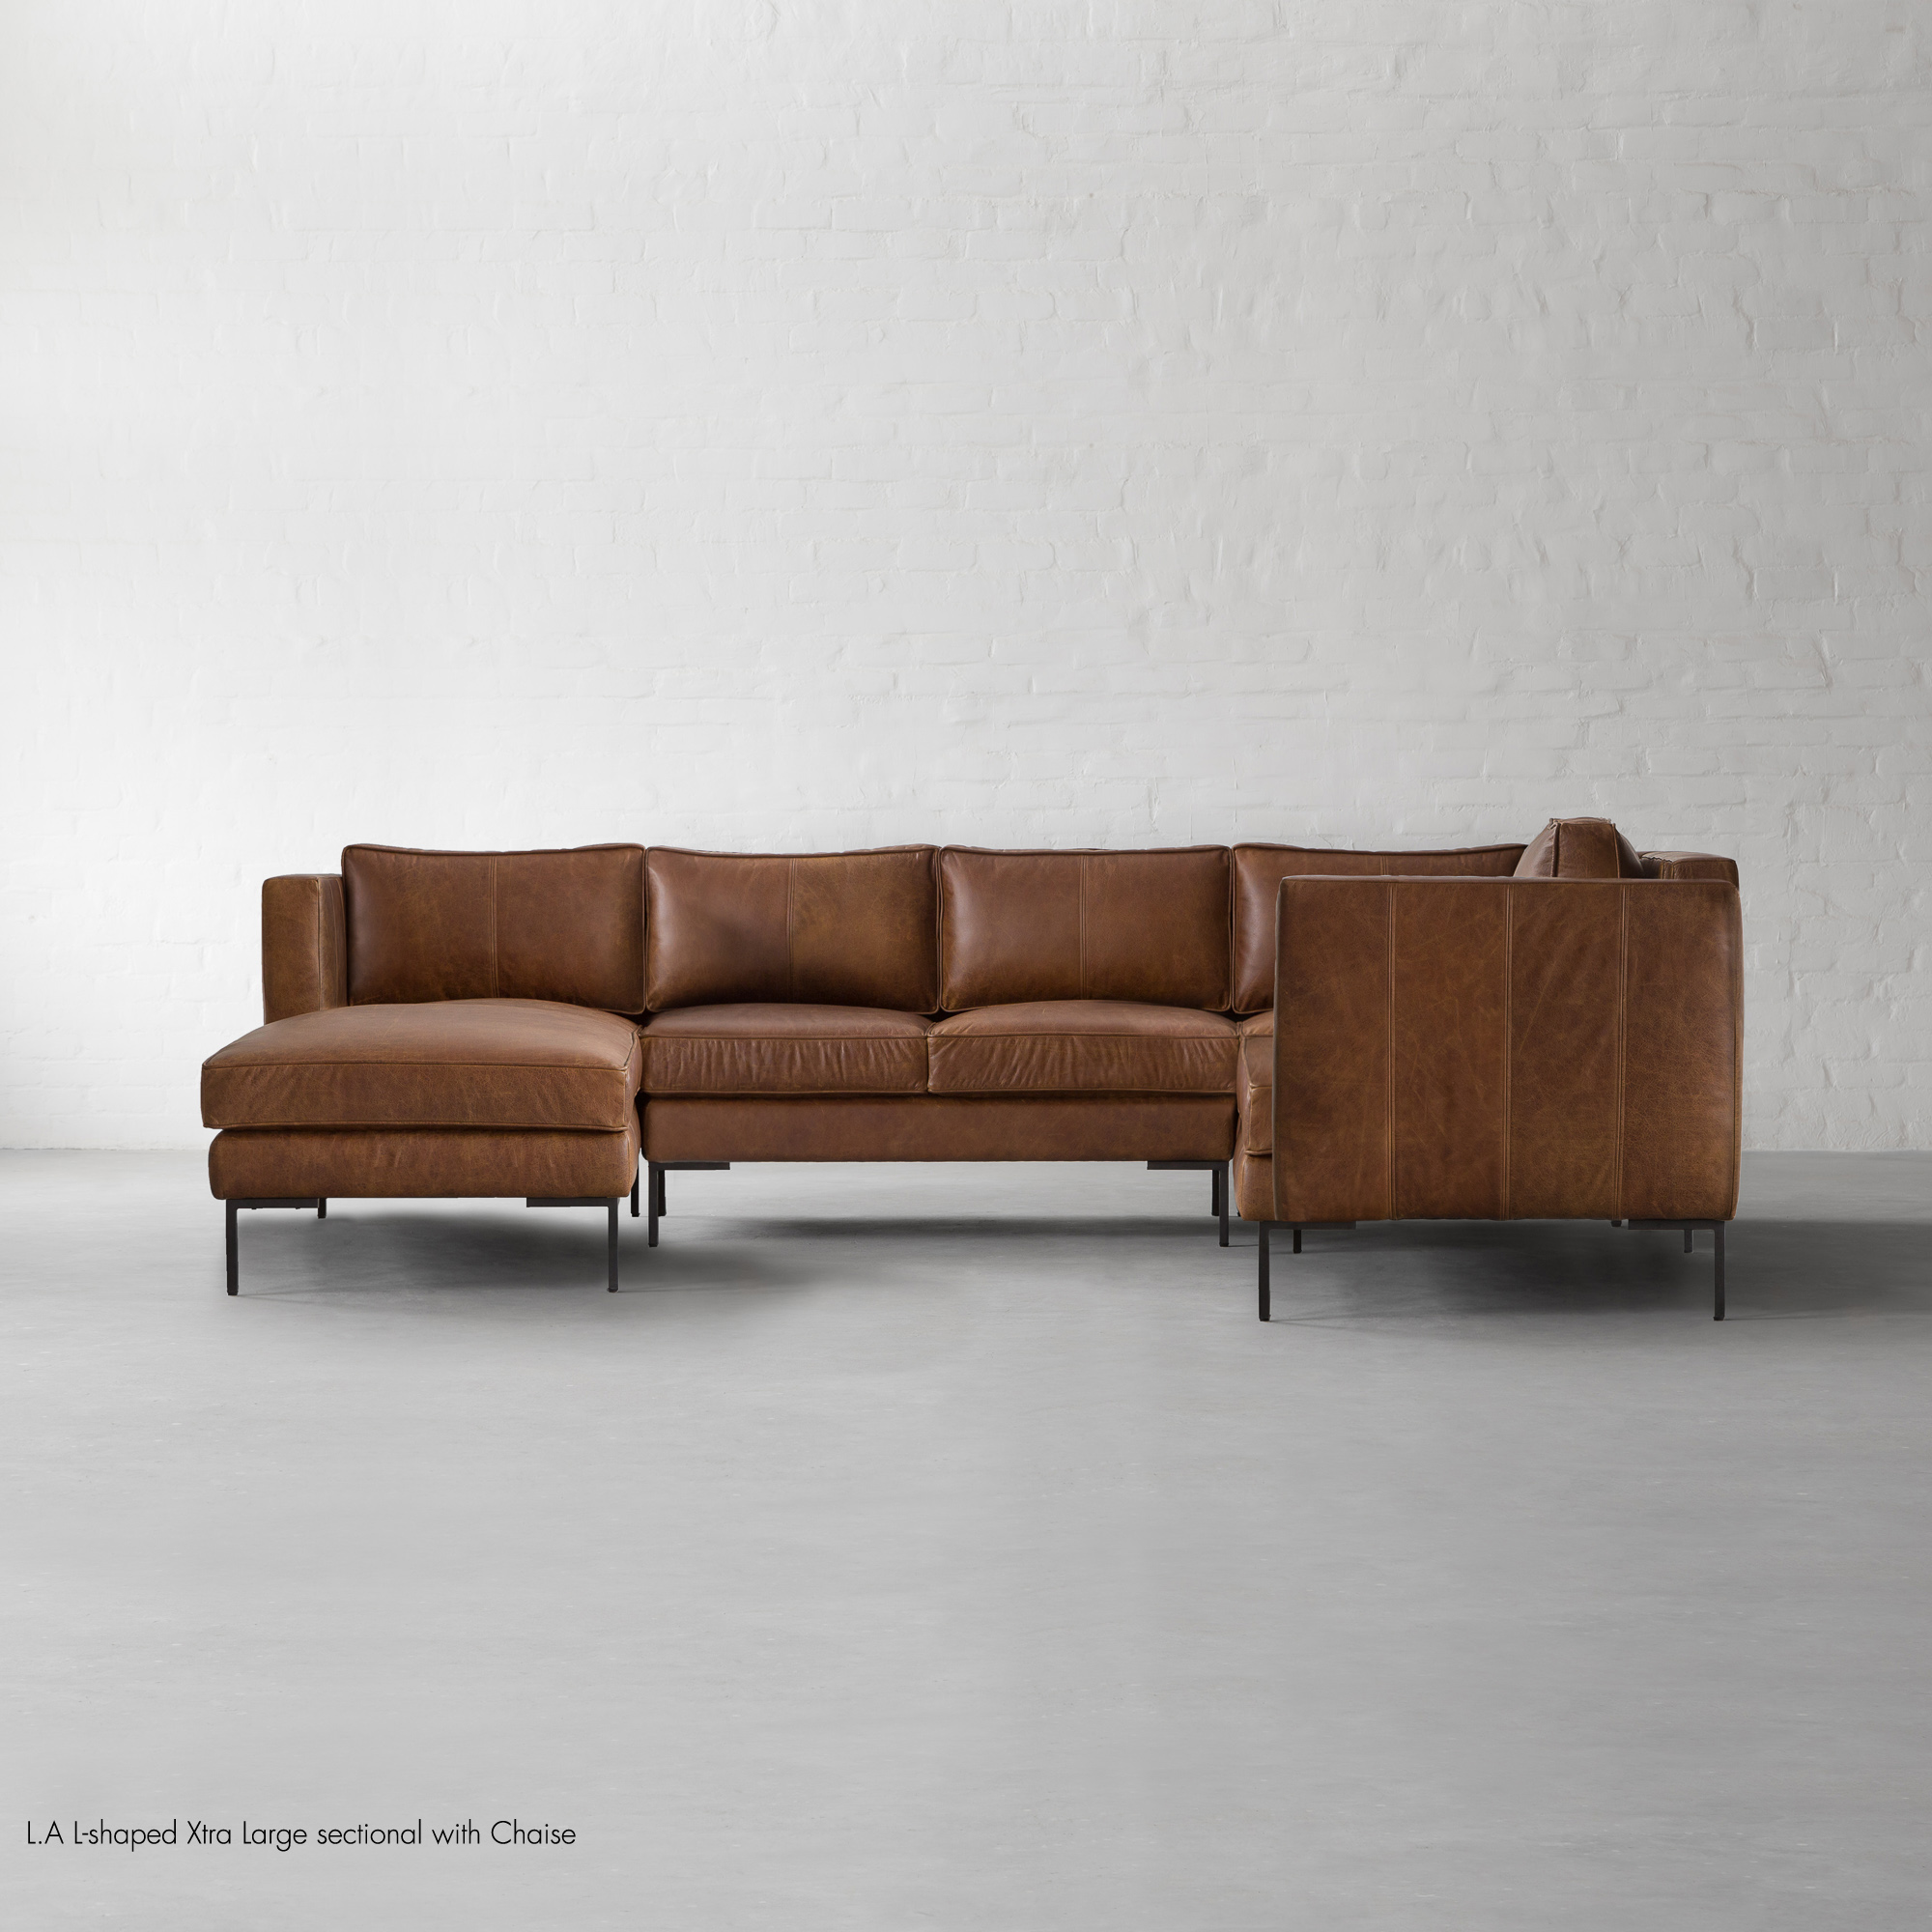 L.A L-shaped Xtra Large sectional with Chaise